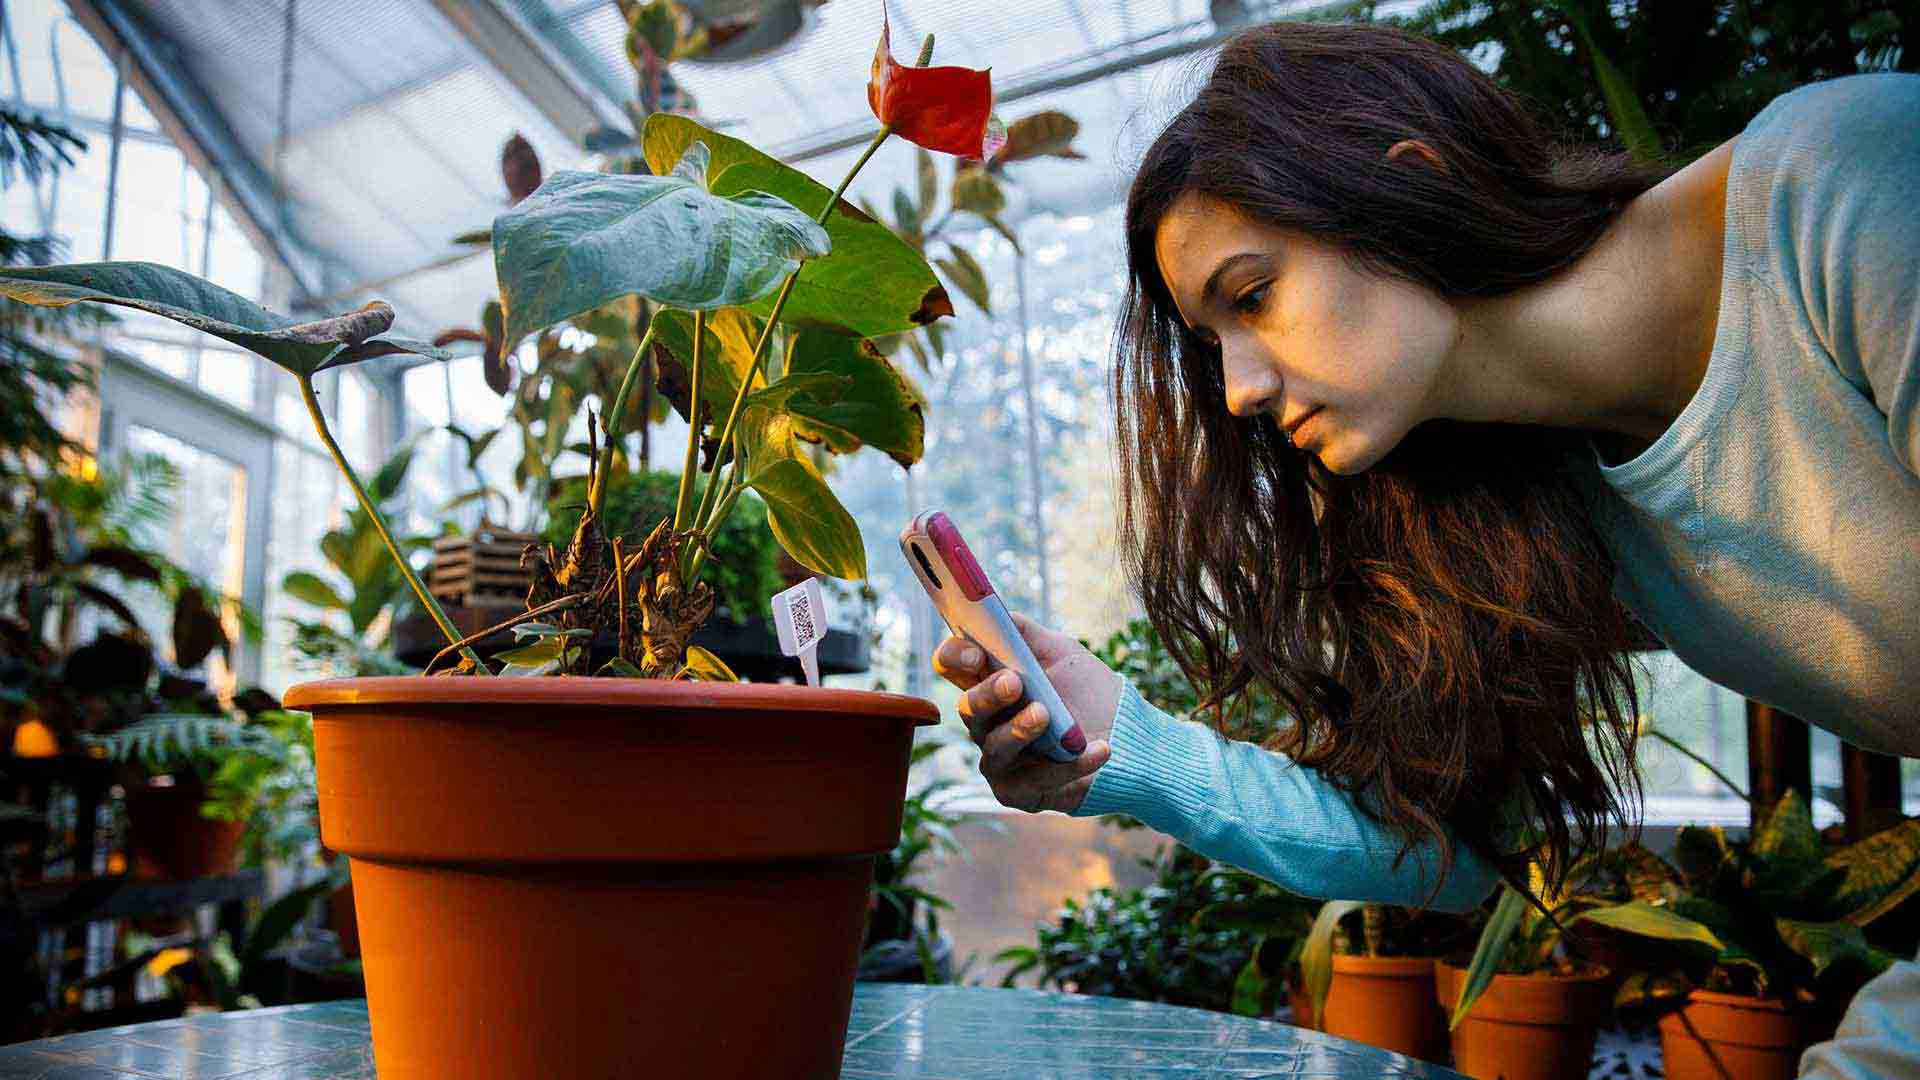 Biology major Kristen Bastug uses a smart phone to read a QR code (barcode) at a Plants, Food and Medicine class session in the John Roach Center for the Liberal Arts Greenhouse.